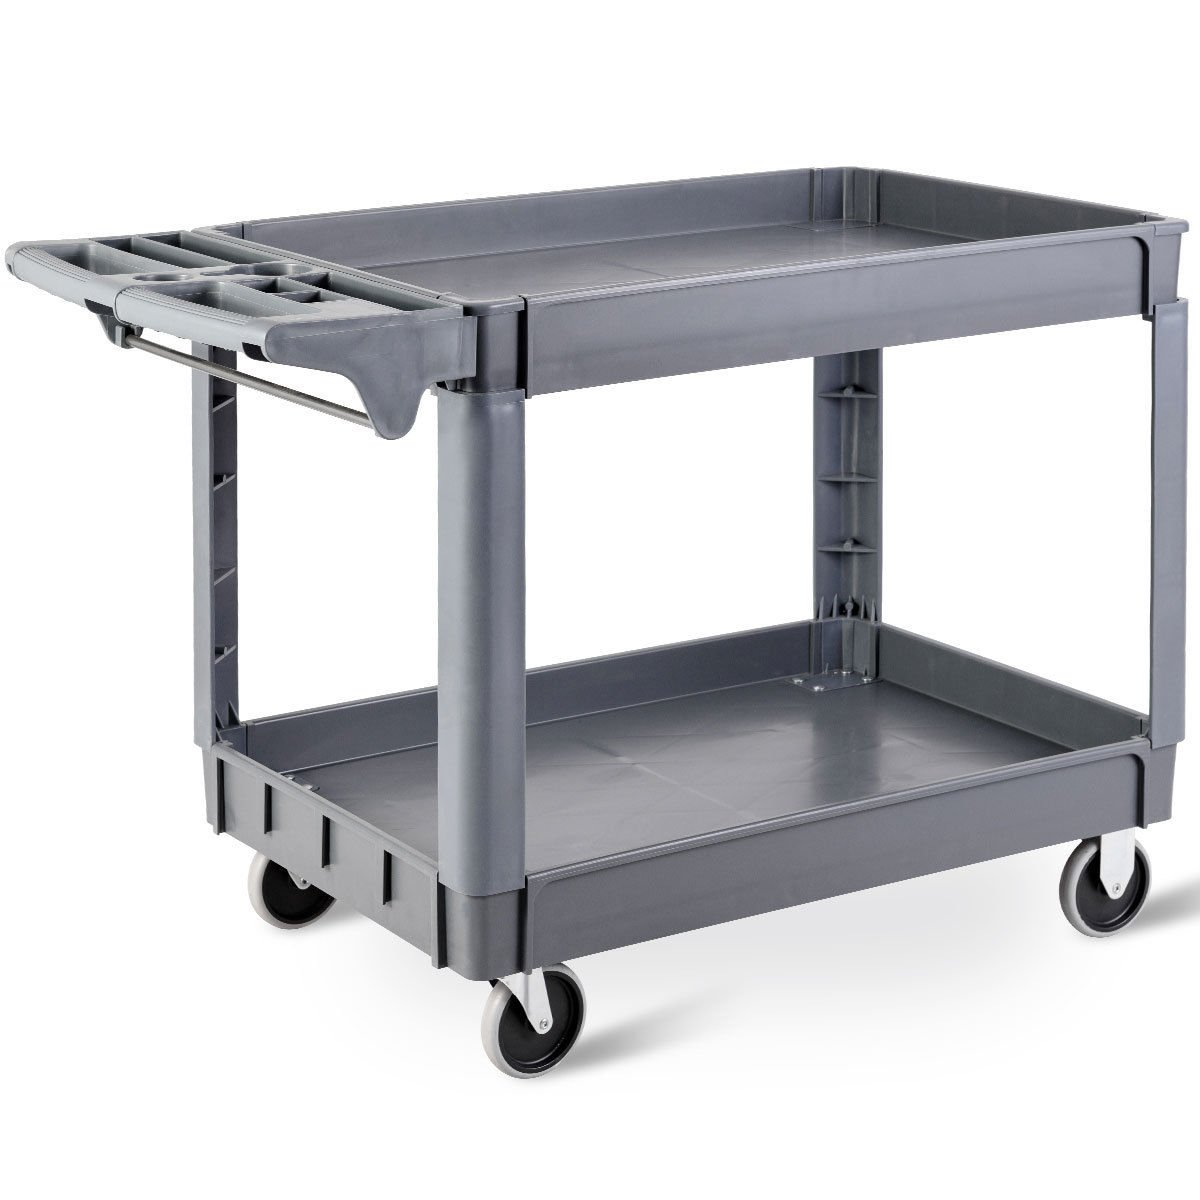 Goplus Plastic Service Cart Utility Storage Cart for All Purpose 550 LBS Capacity (2 Shelves 46'' x 25'' x 33'')